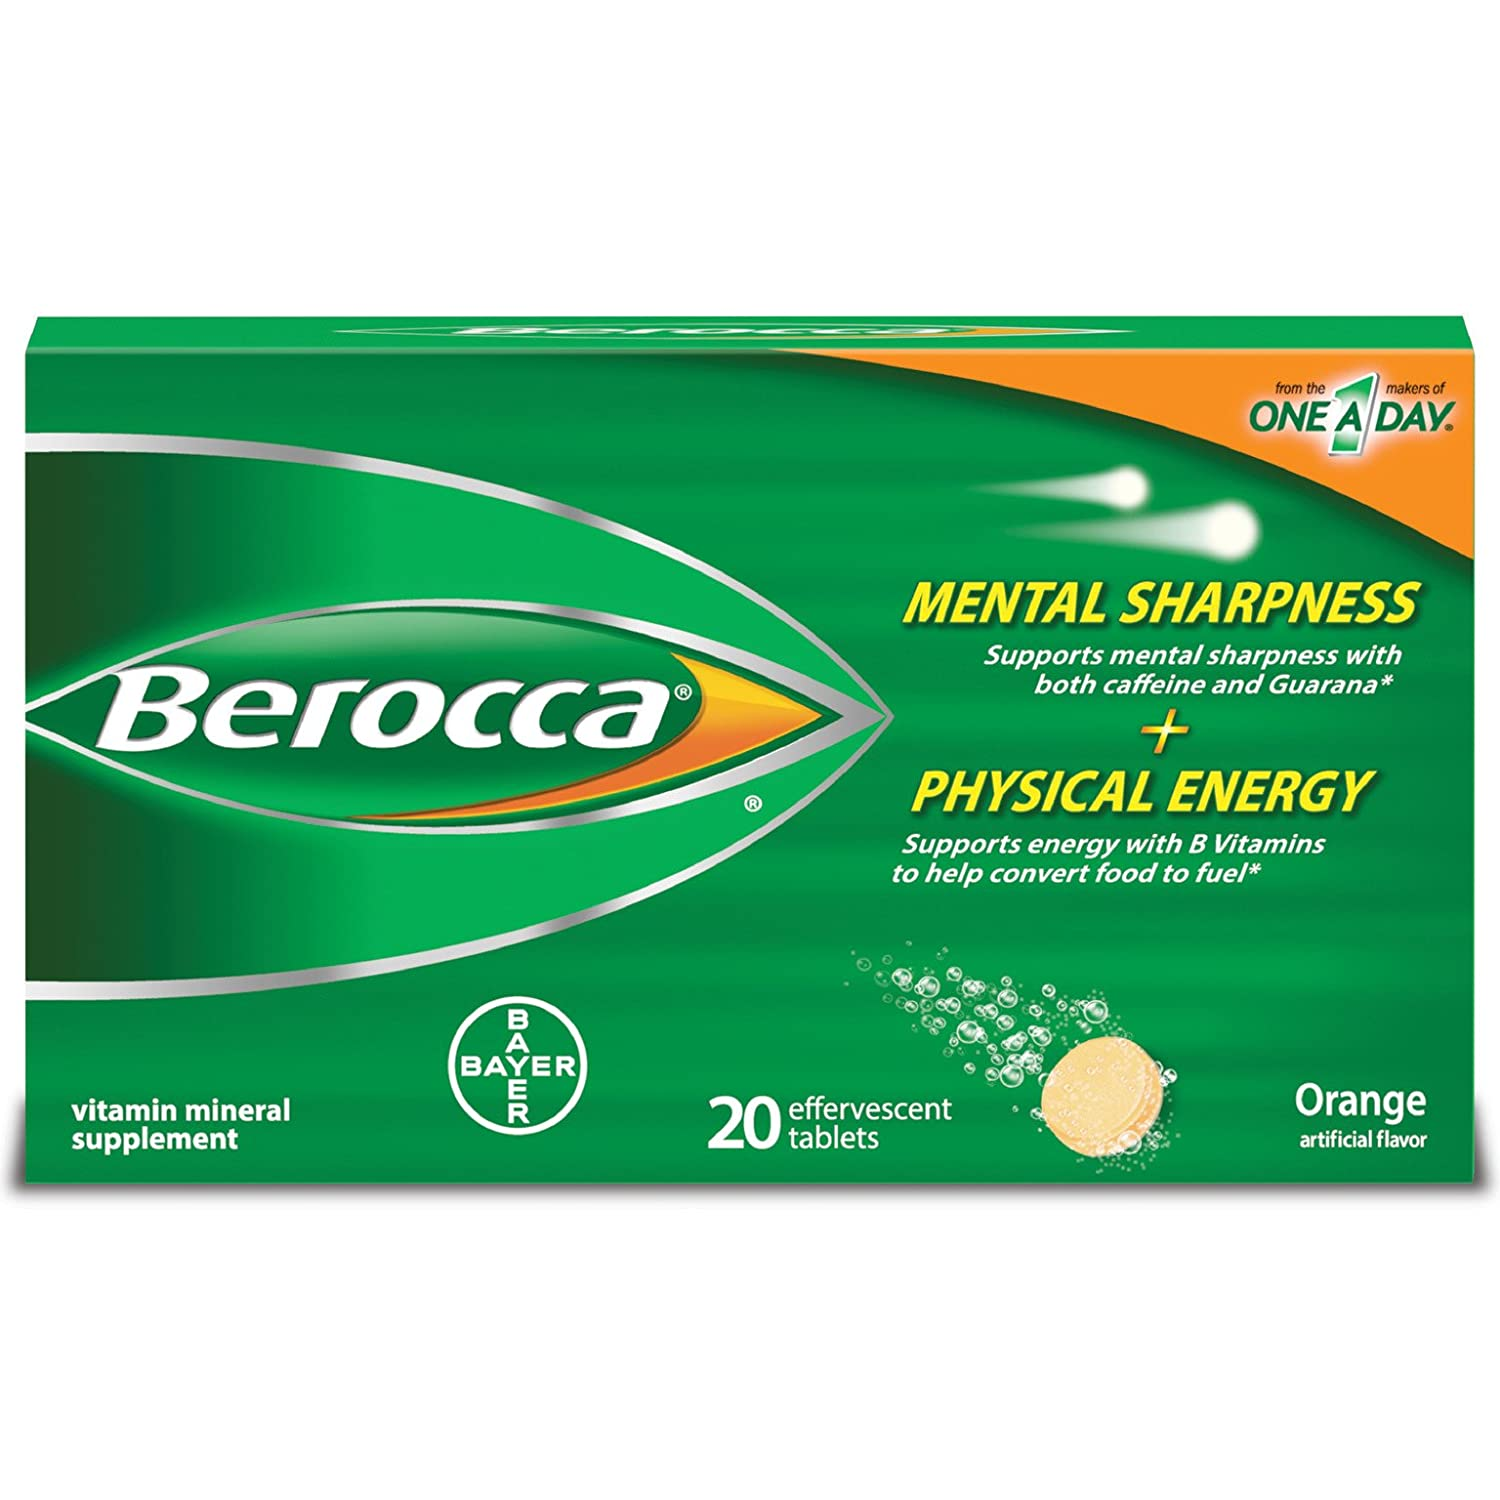 Amazon.com: Berocca Effervescent Tablets, 20 Count, 1, 1 ...